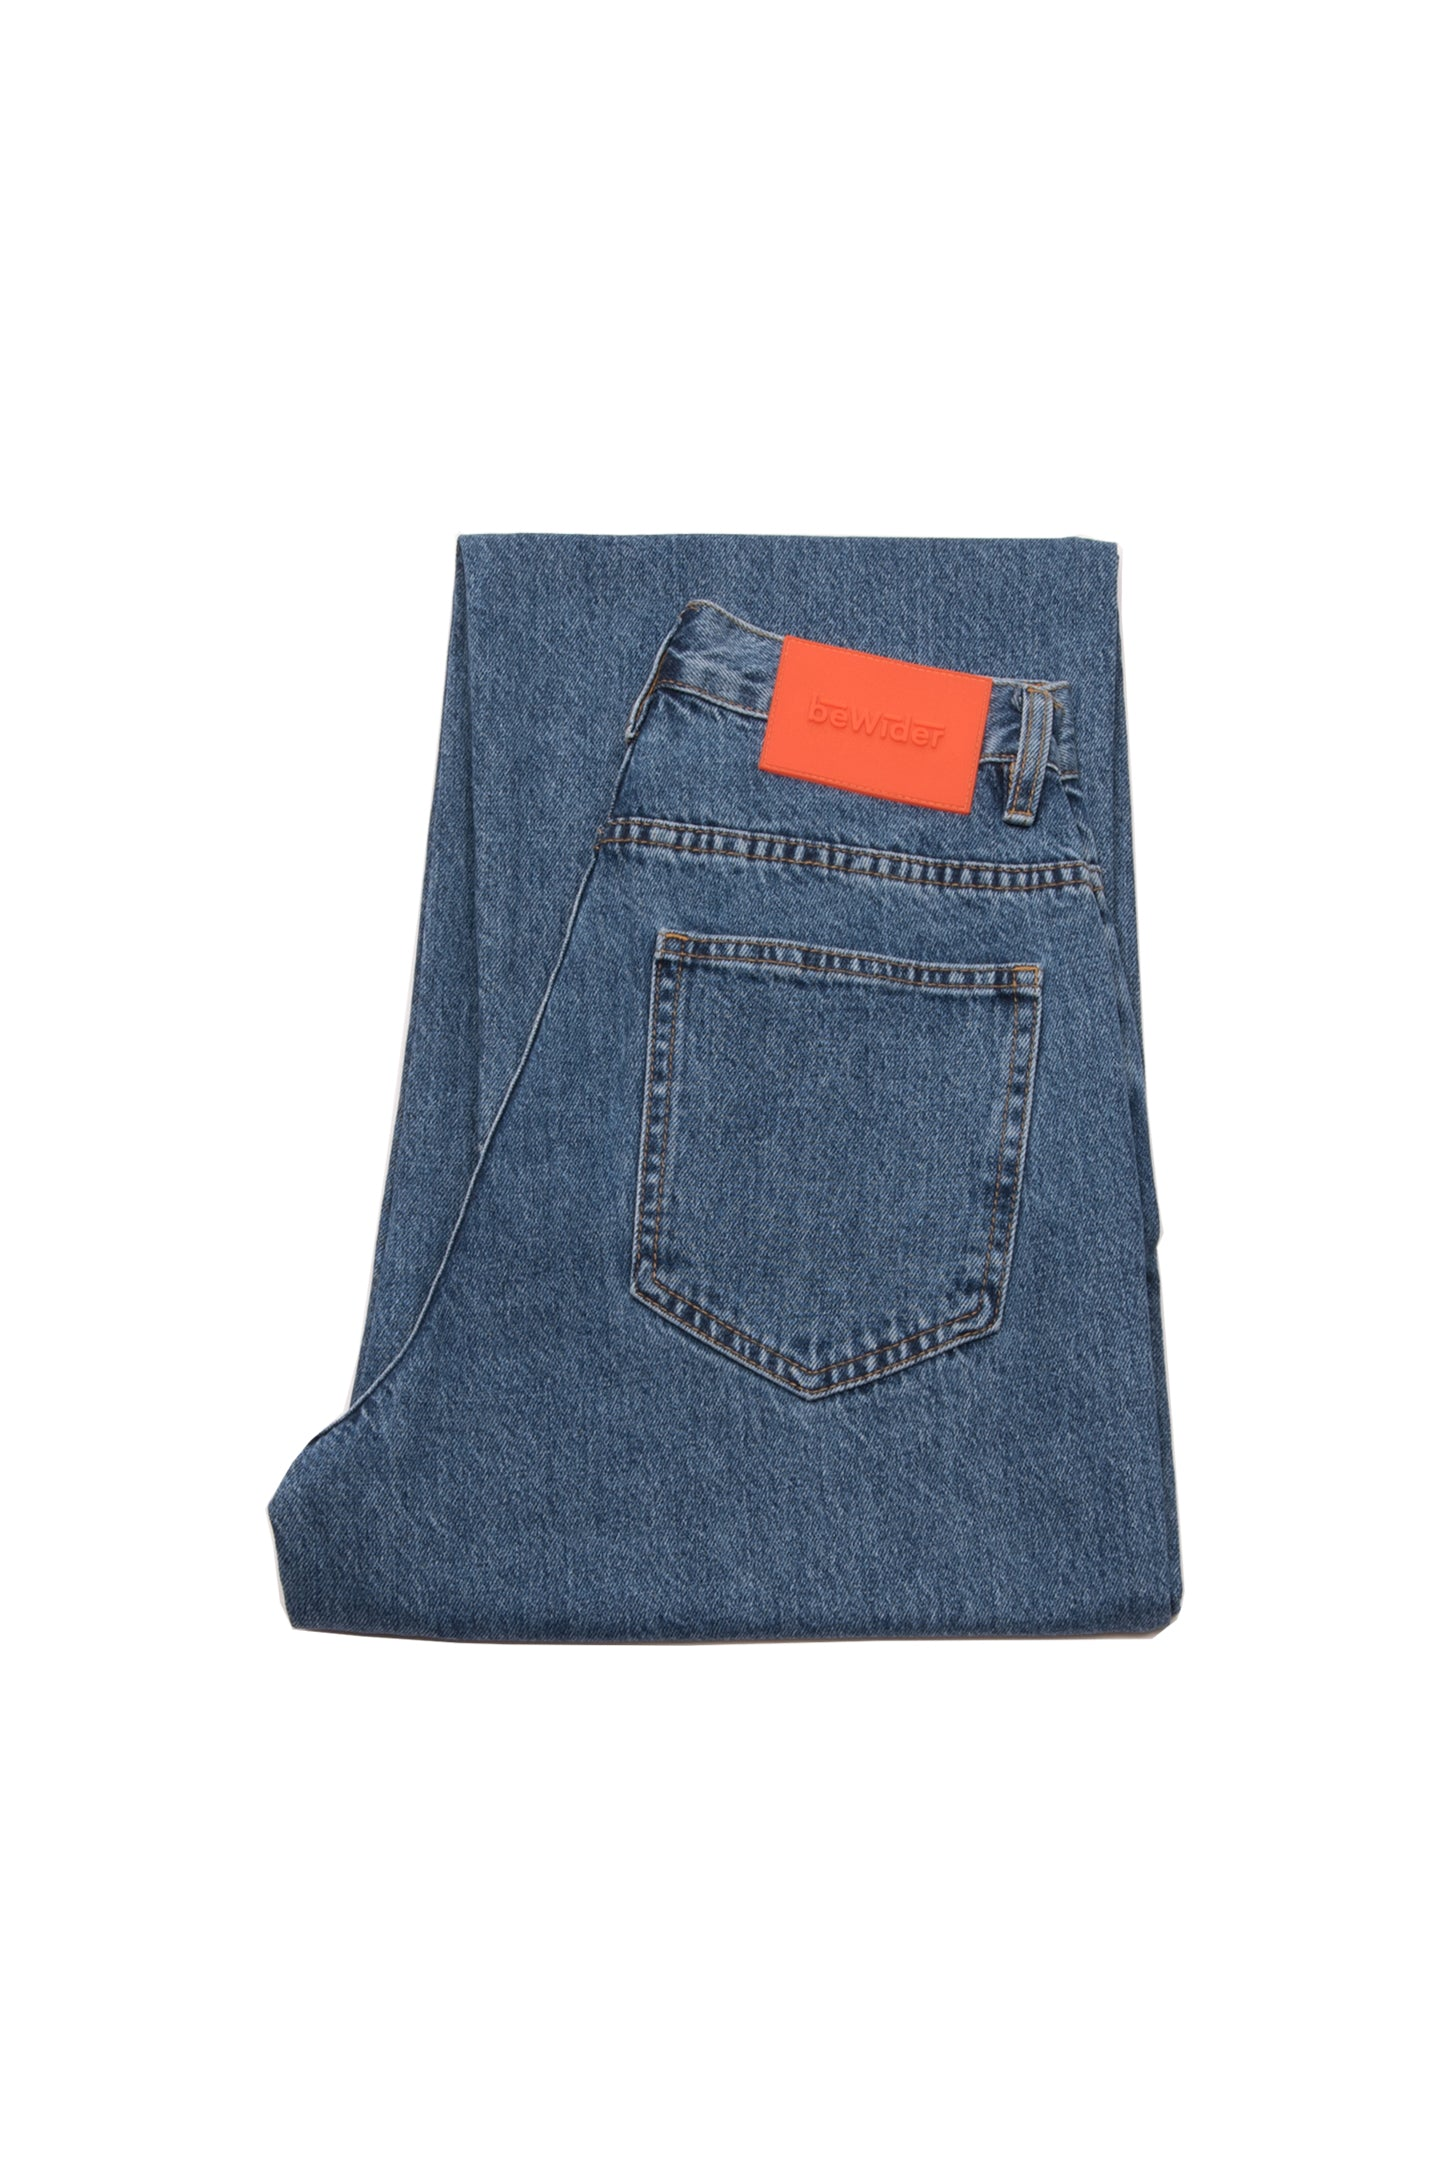 BEWIDER JEANS BLUE DENIM